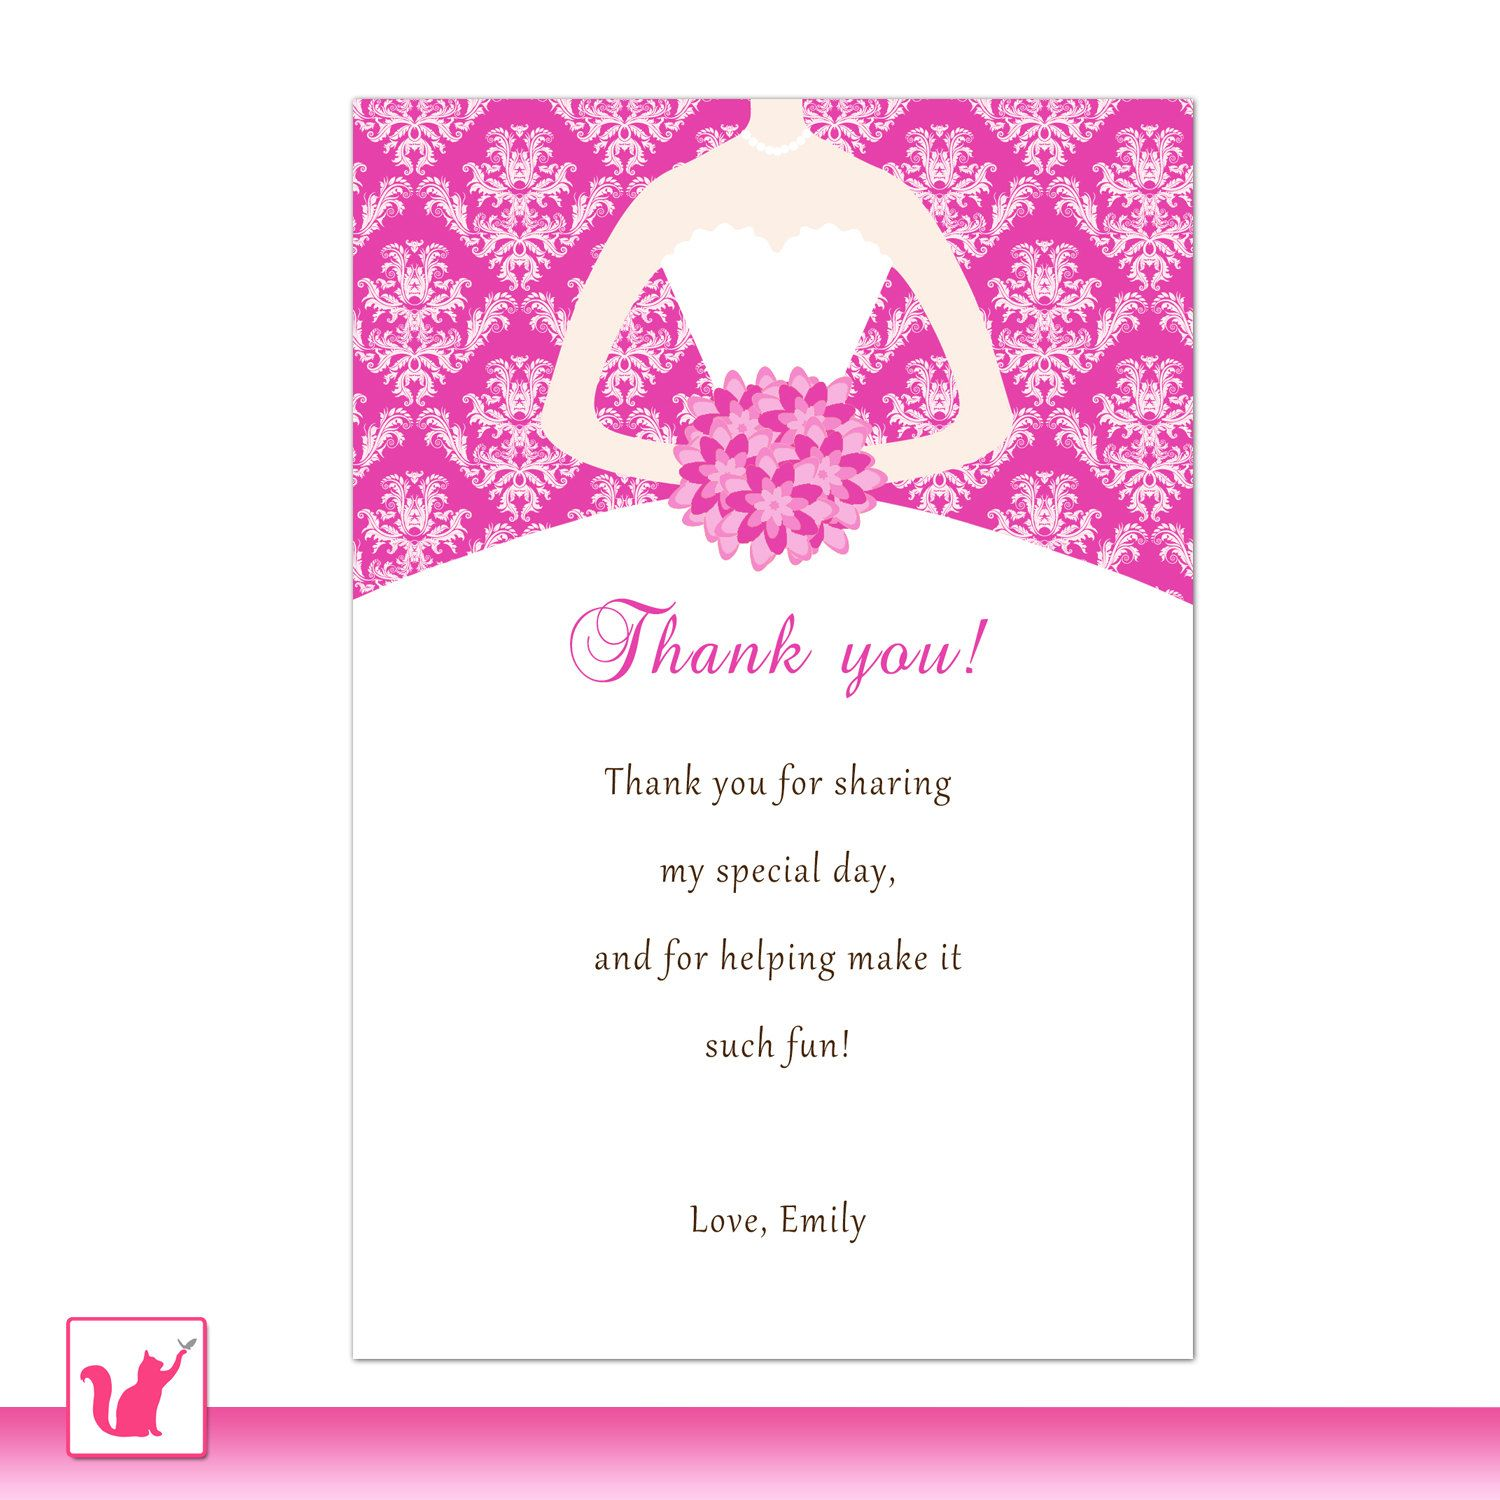 quinceanera thank you notes request a custom order and have something made just for you